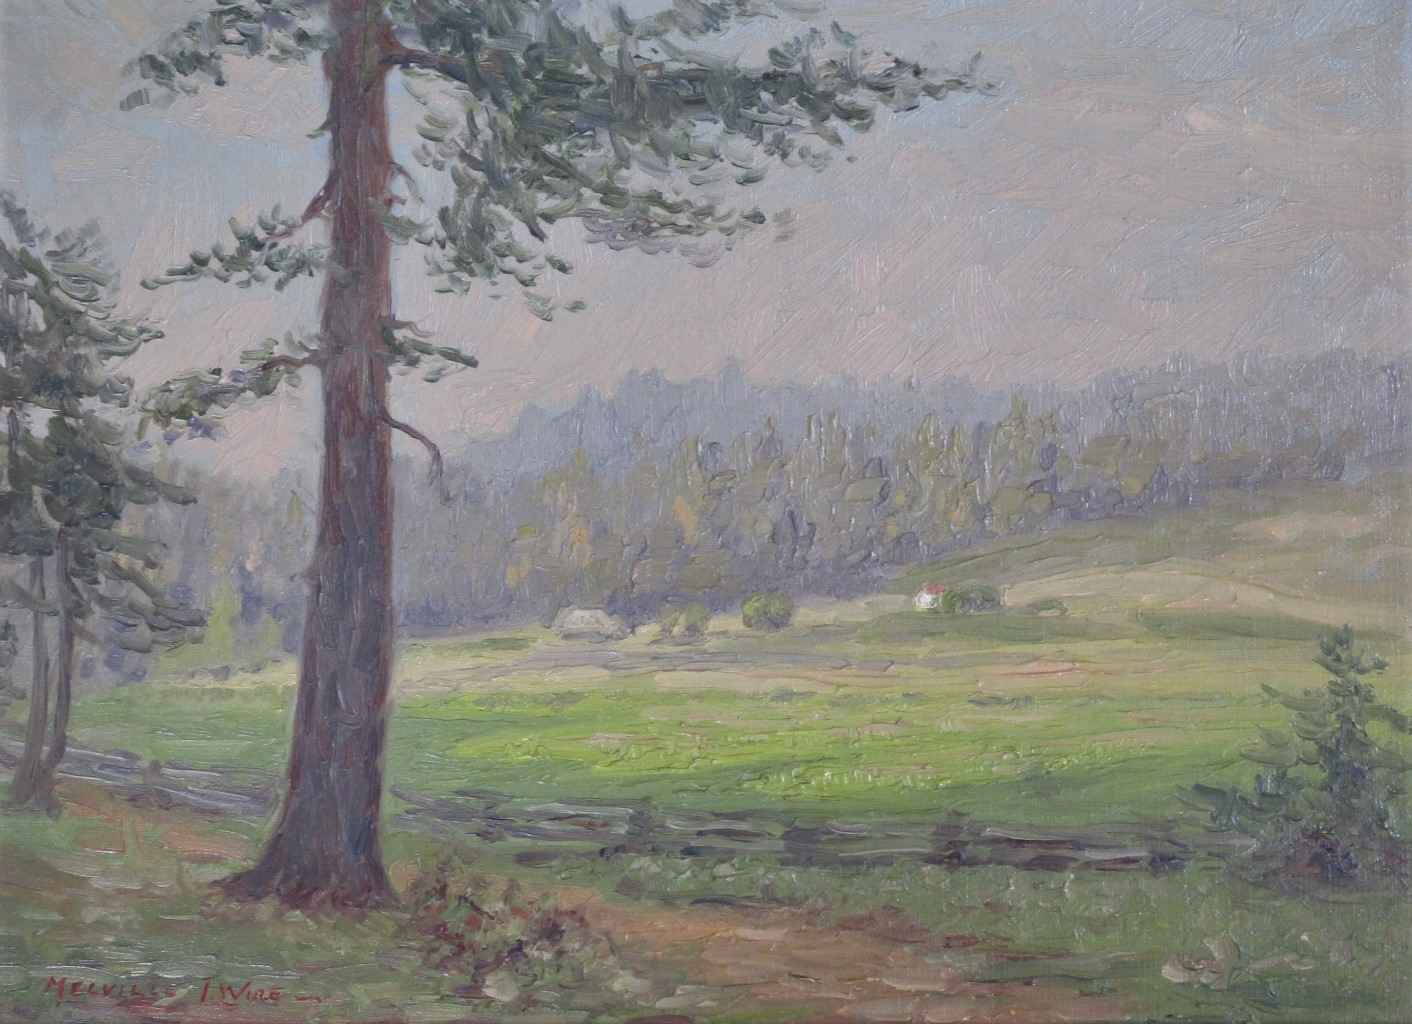 Unknown (Tree&meadow) by  Melville Wire - Masterpiece Online